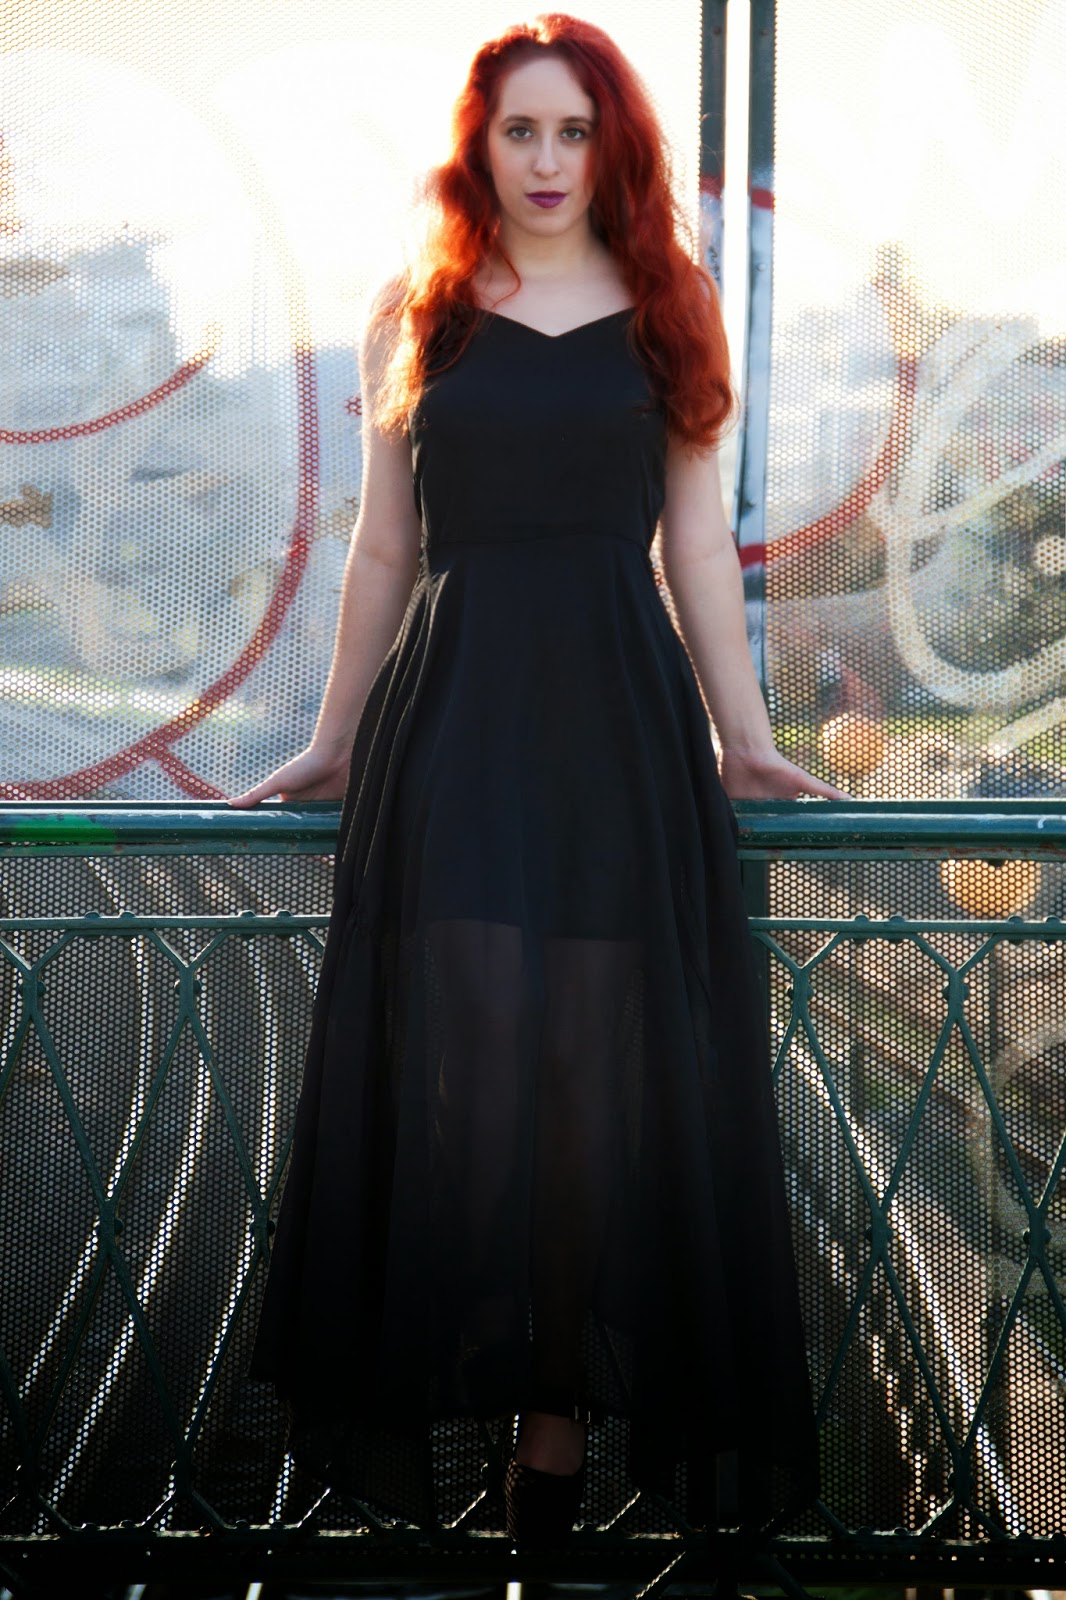 Redhead, spotlights on the redhead, clothes, Anna Keni, Anna, fashion, blogger, fashion blogger, review, red, dress, model, hot, glamour, dolls, glamour dolls, meleona, oasap, waiting game